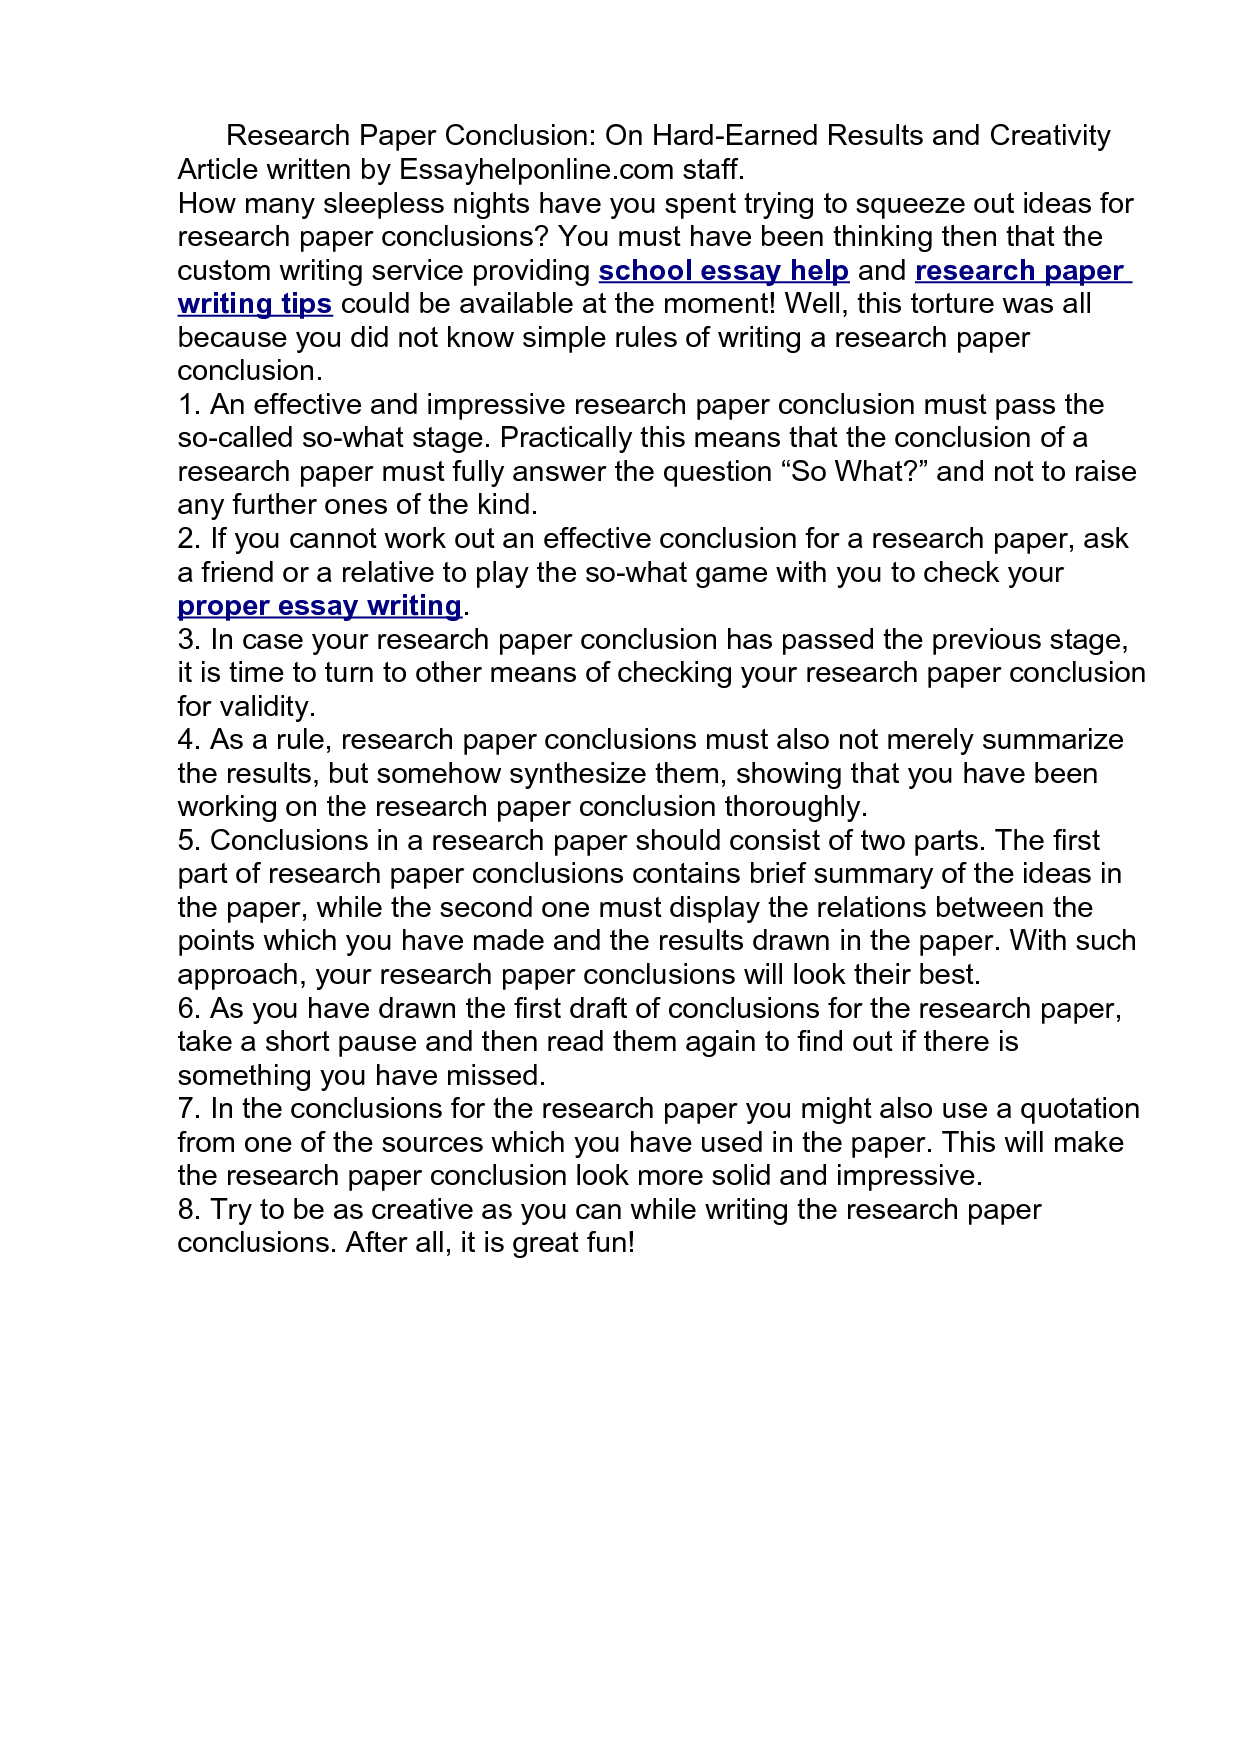 Research Paper Conclusion Paragraph Custom Writing Service